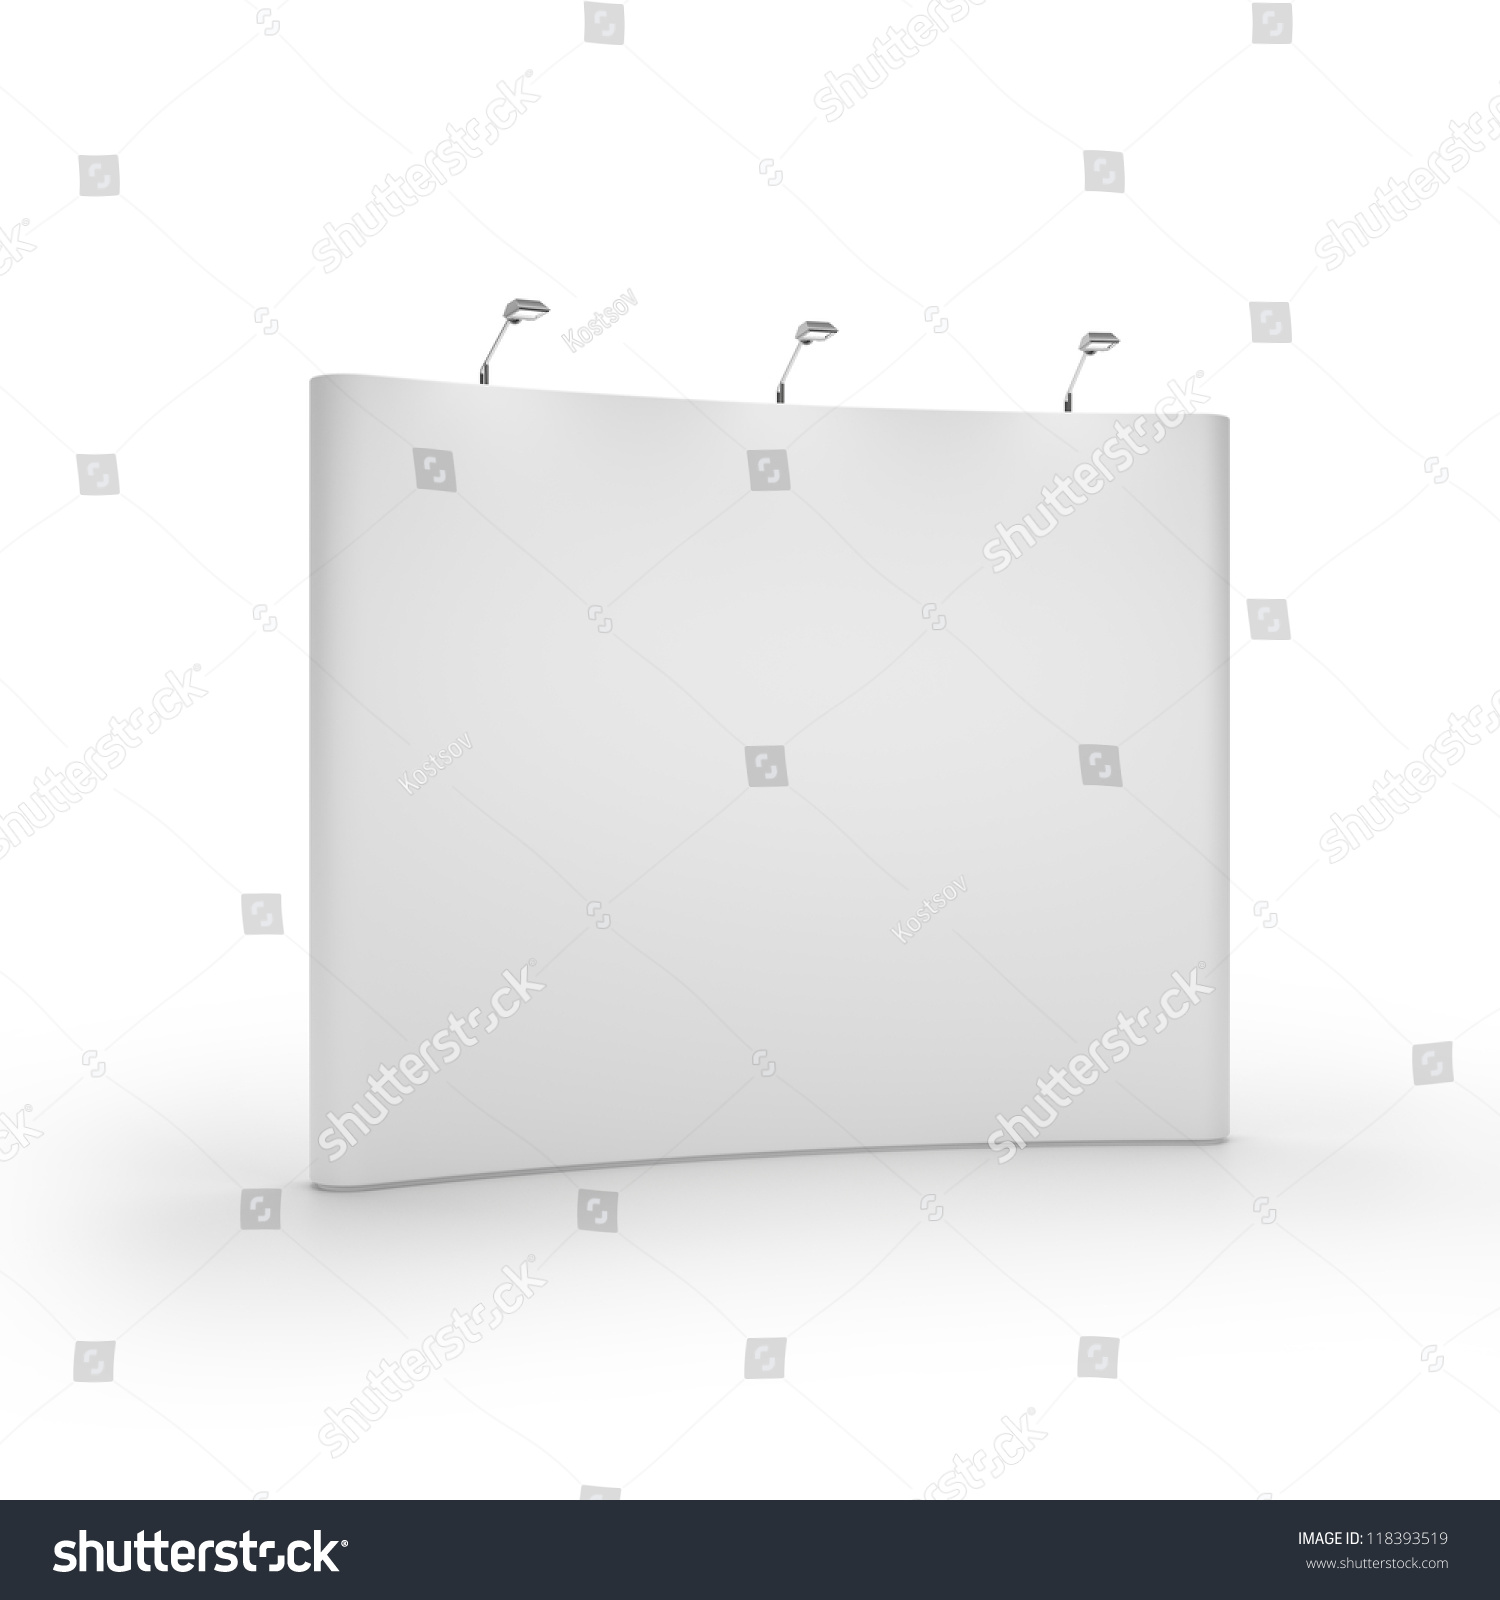 Exhibition Booth Blank : White blank trade show booth stock illustration